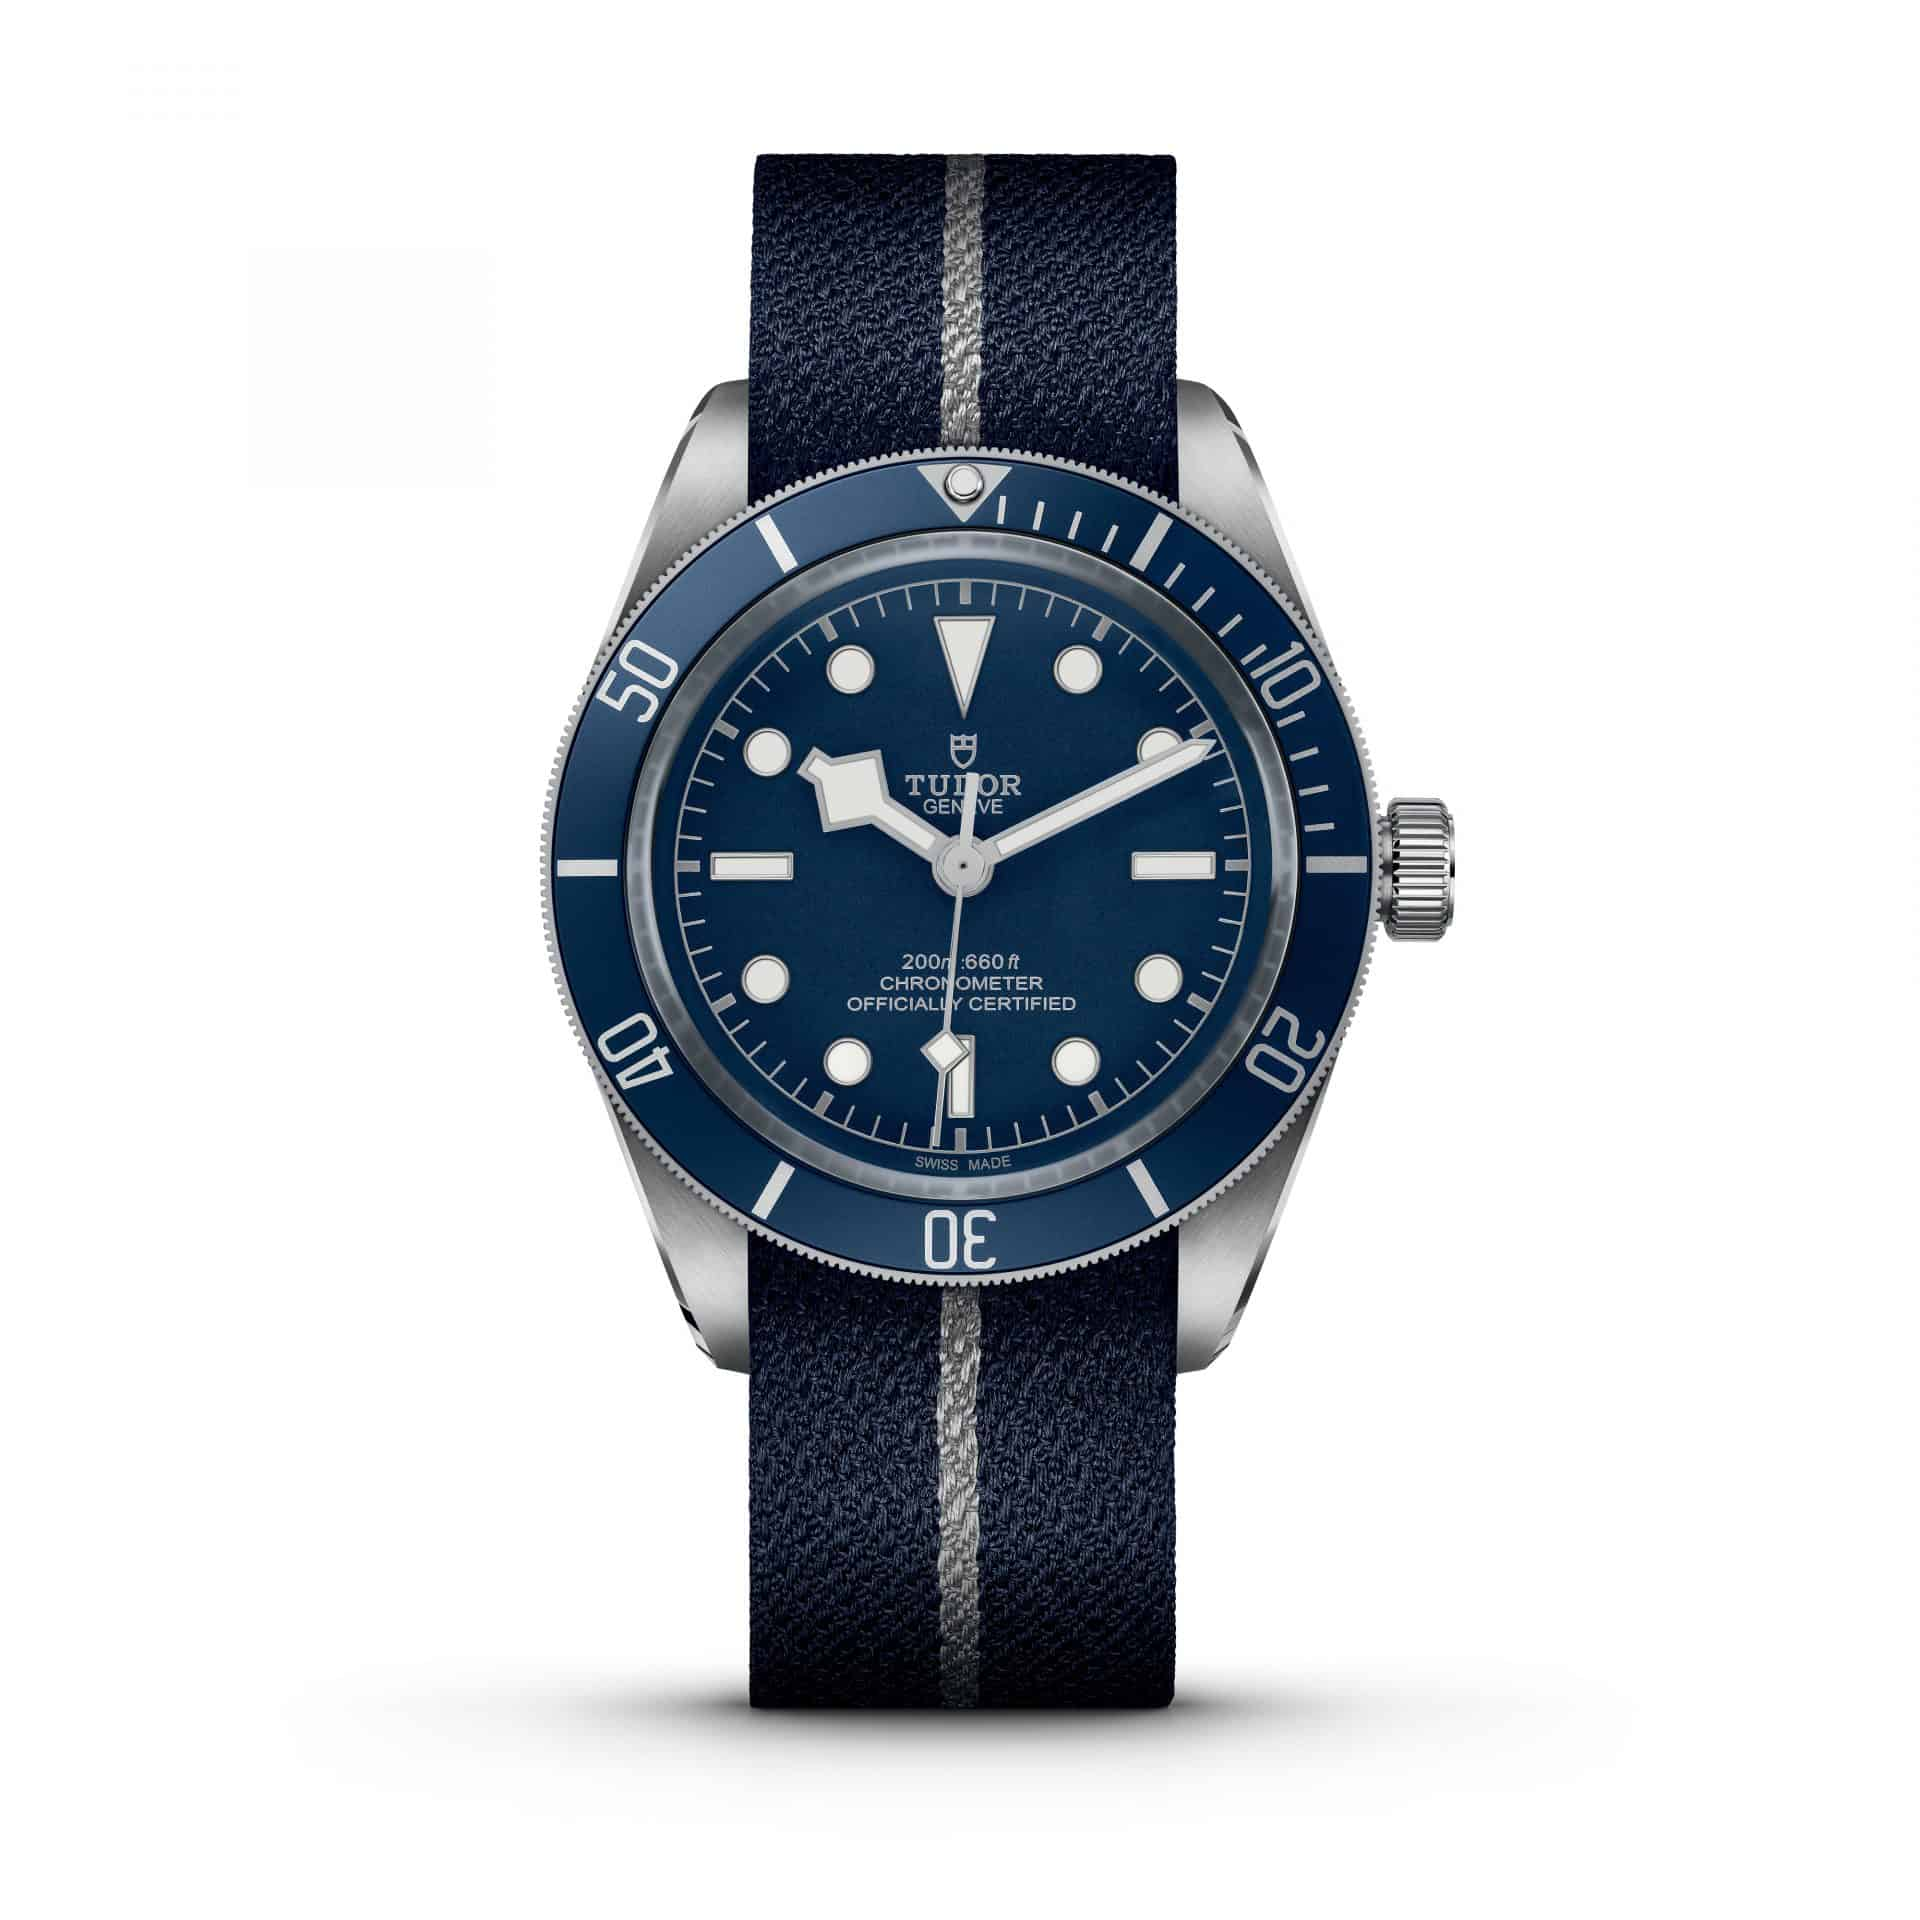 Die Tudor Black Bay Fifty-Eight Navy Blue Variante mit Textilband